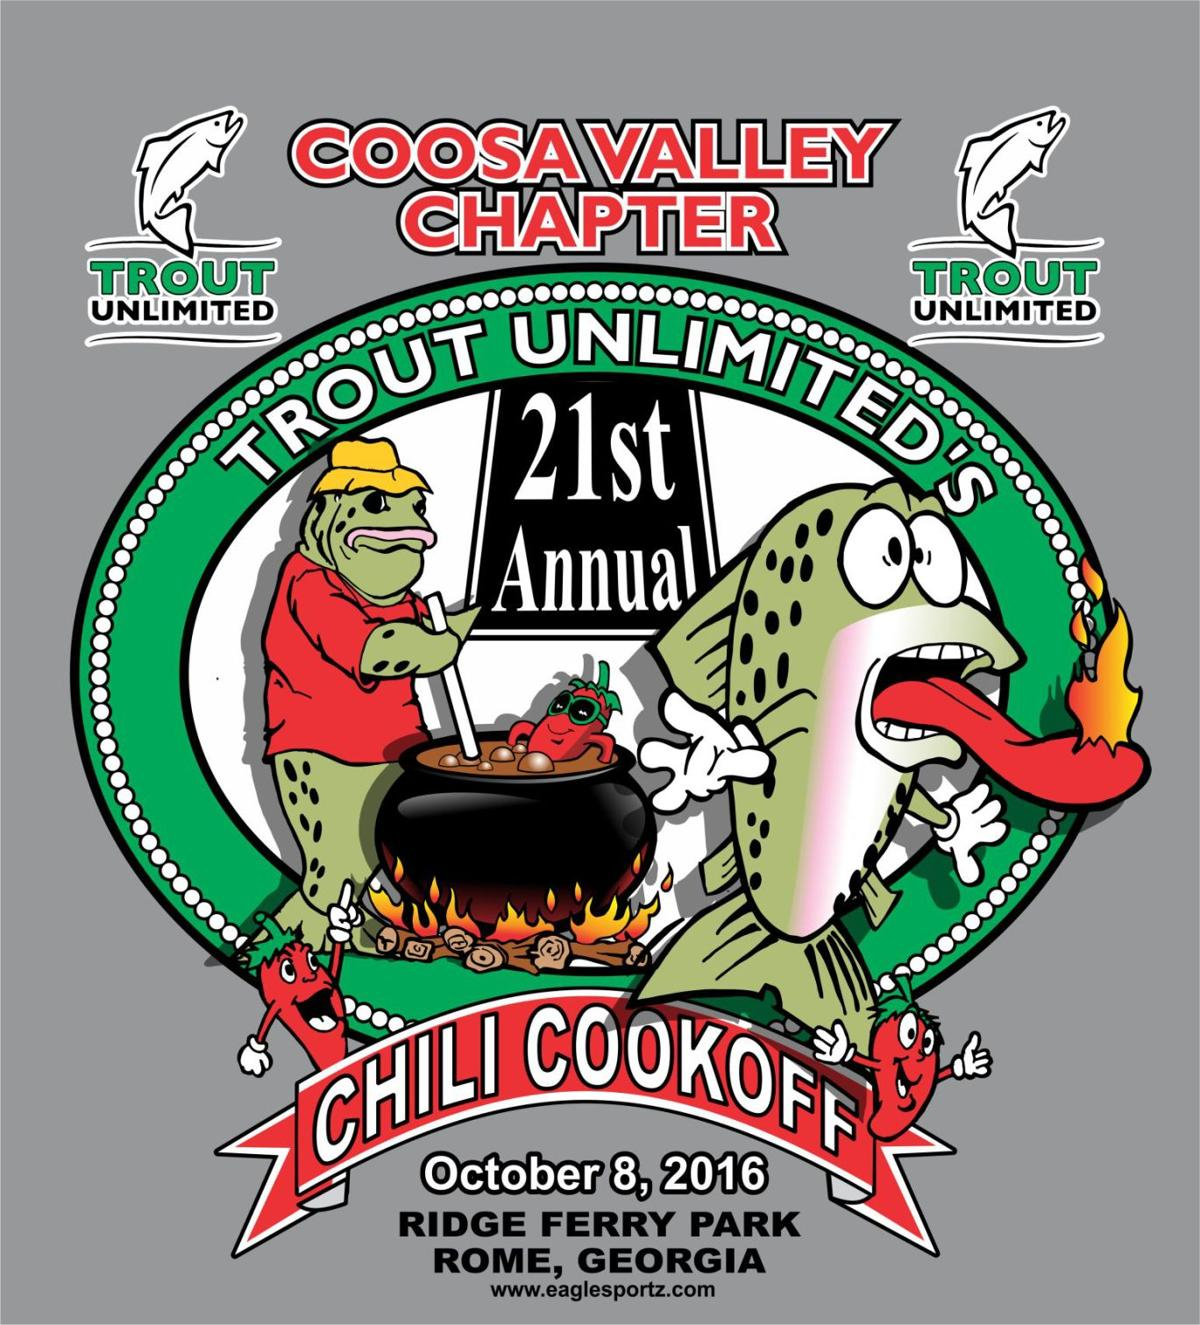 Trout Unlimited Chili Cook Off